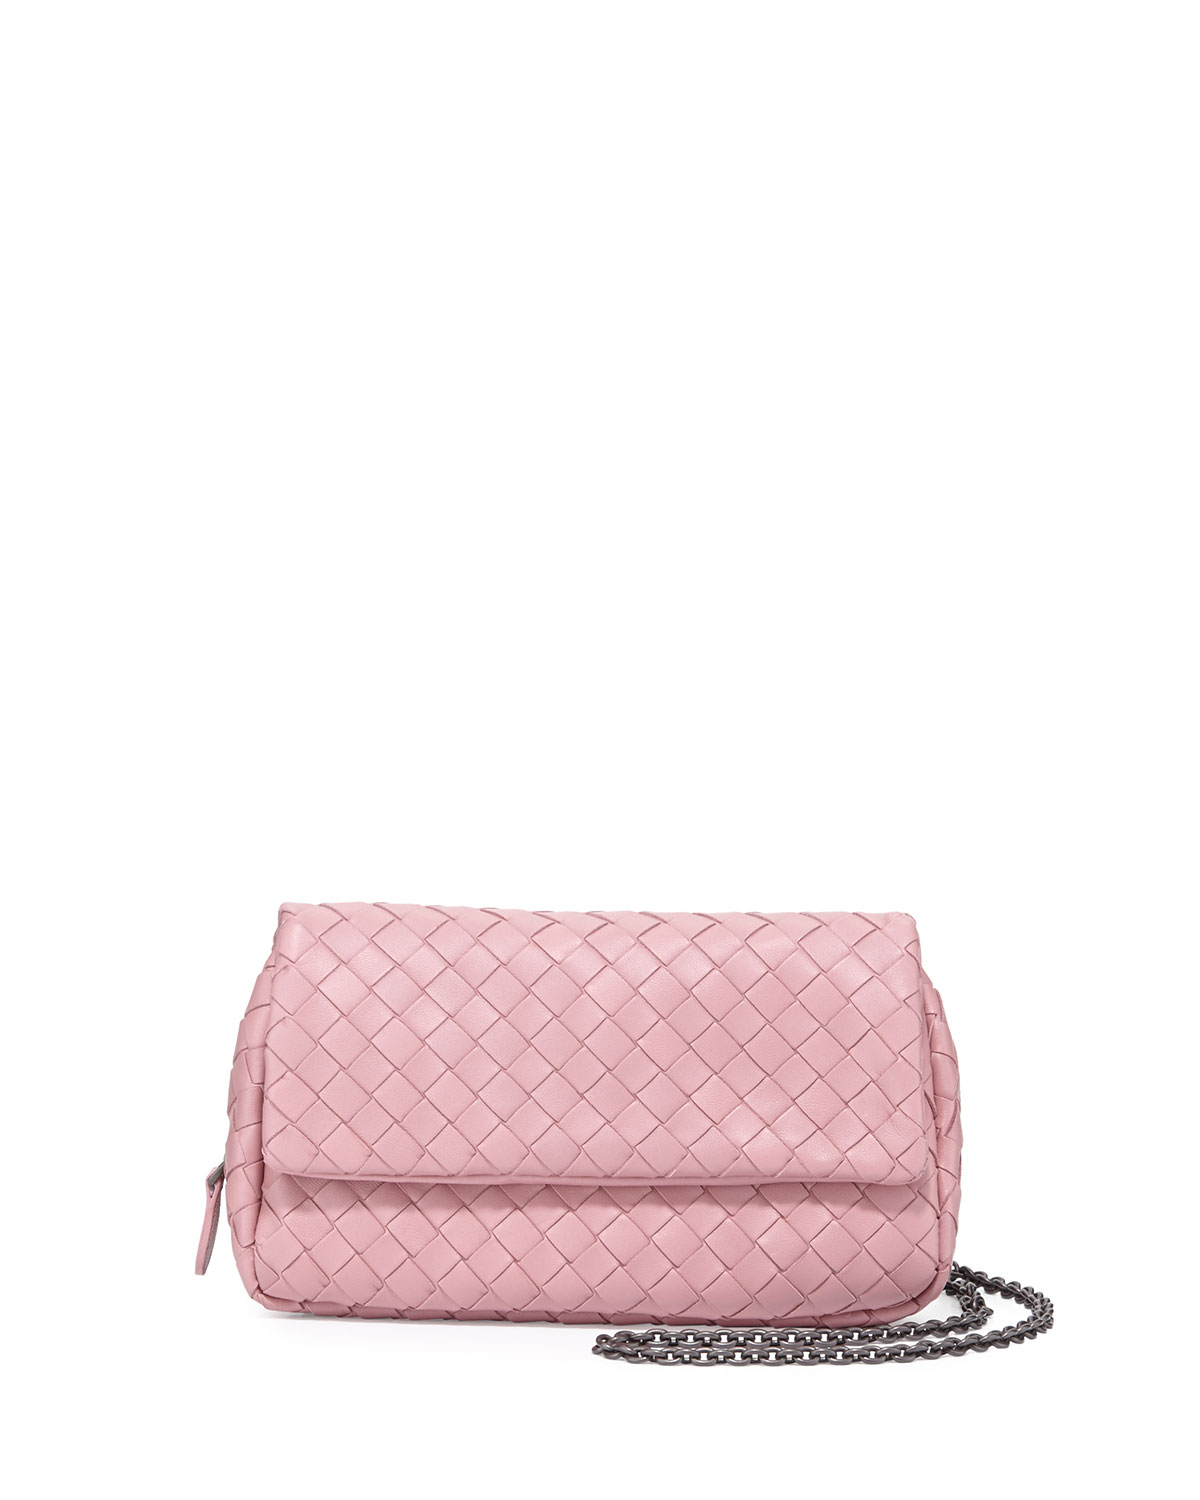 Bottega Veneta Intrecciato Small Chain Crossbody Bag 6c59e947d3f69